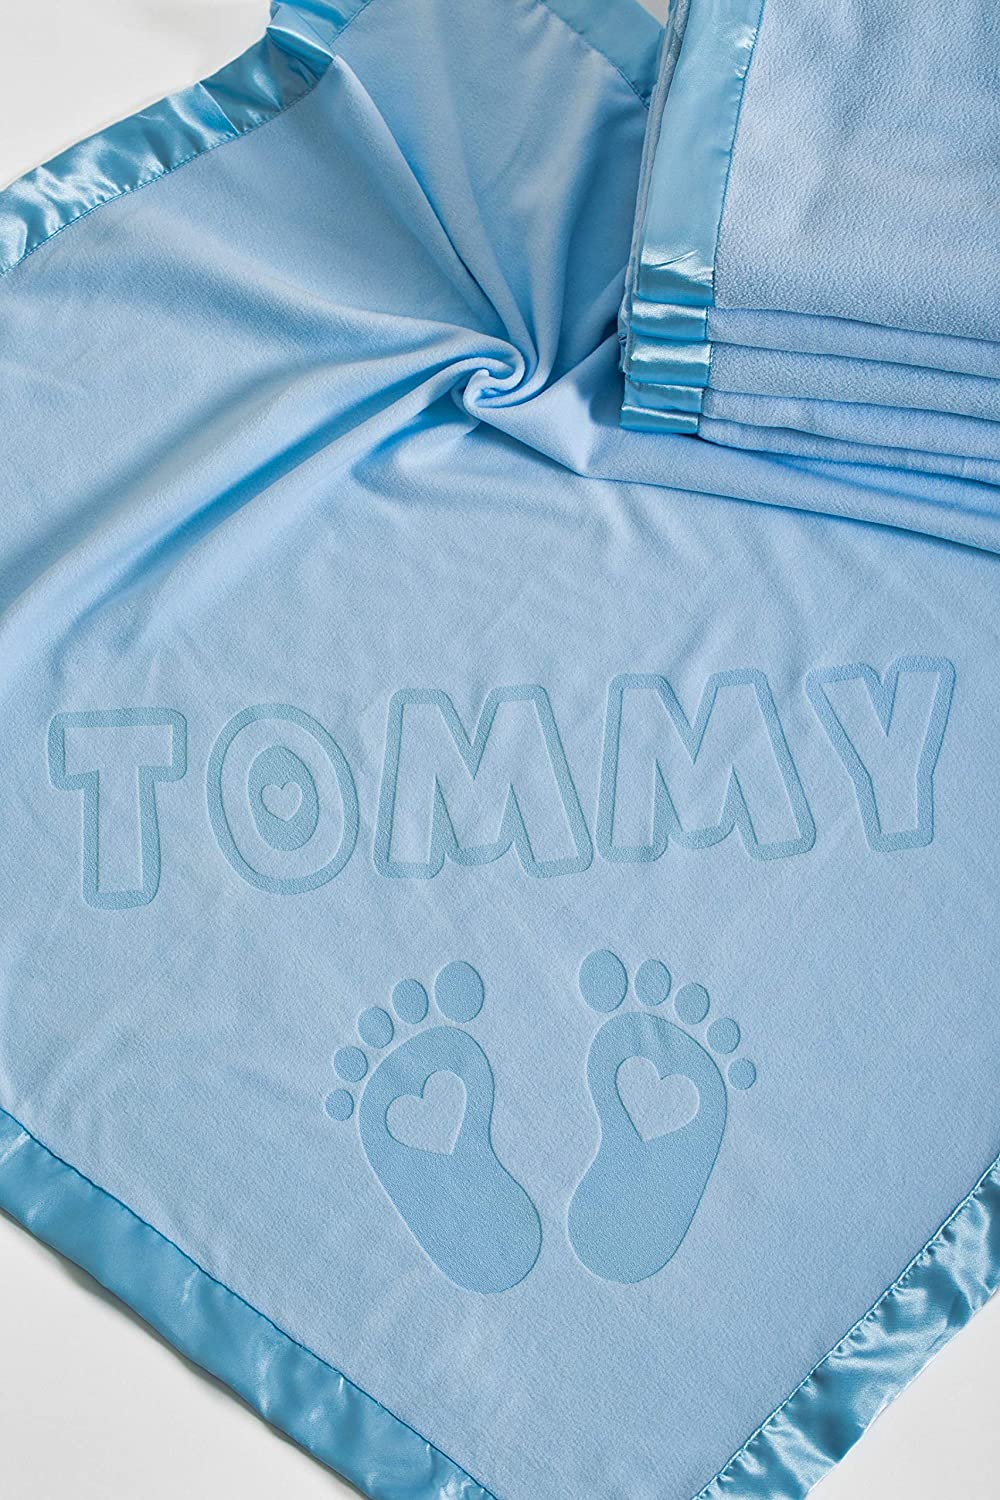 Or Parents Satin Trim Size 80x80CM Gifts for Baby Girls Personalised Baby Cot Blanket with Name and Feet Design Boys